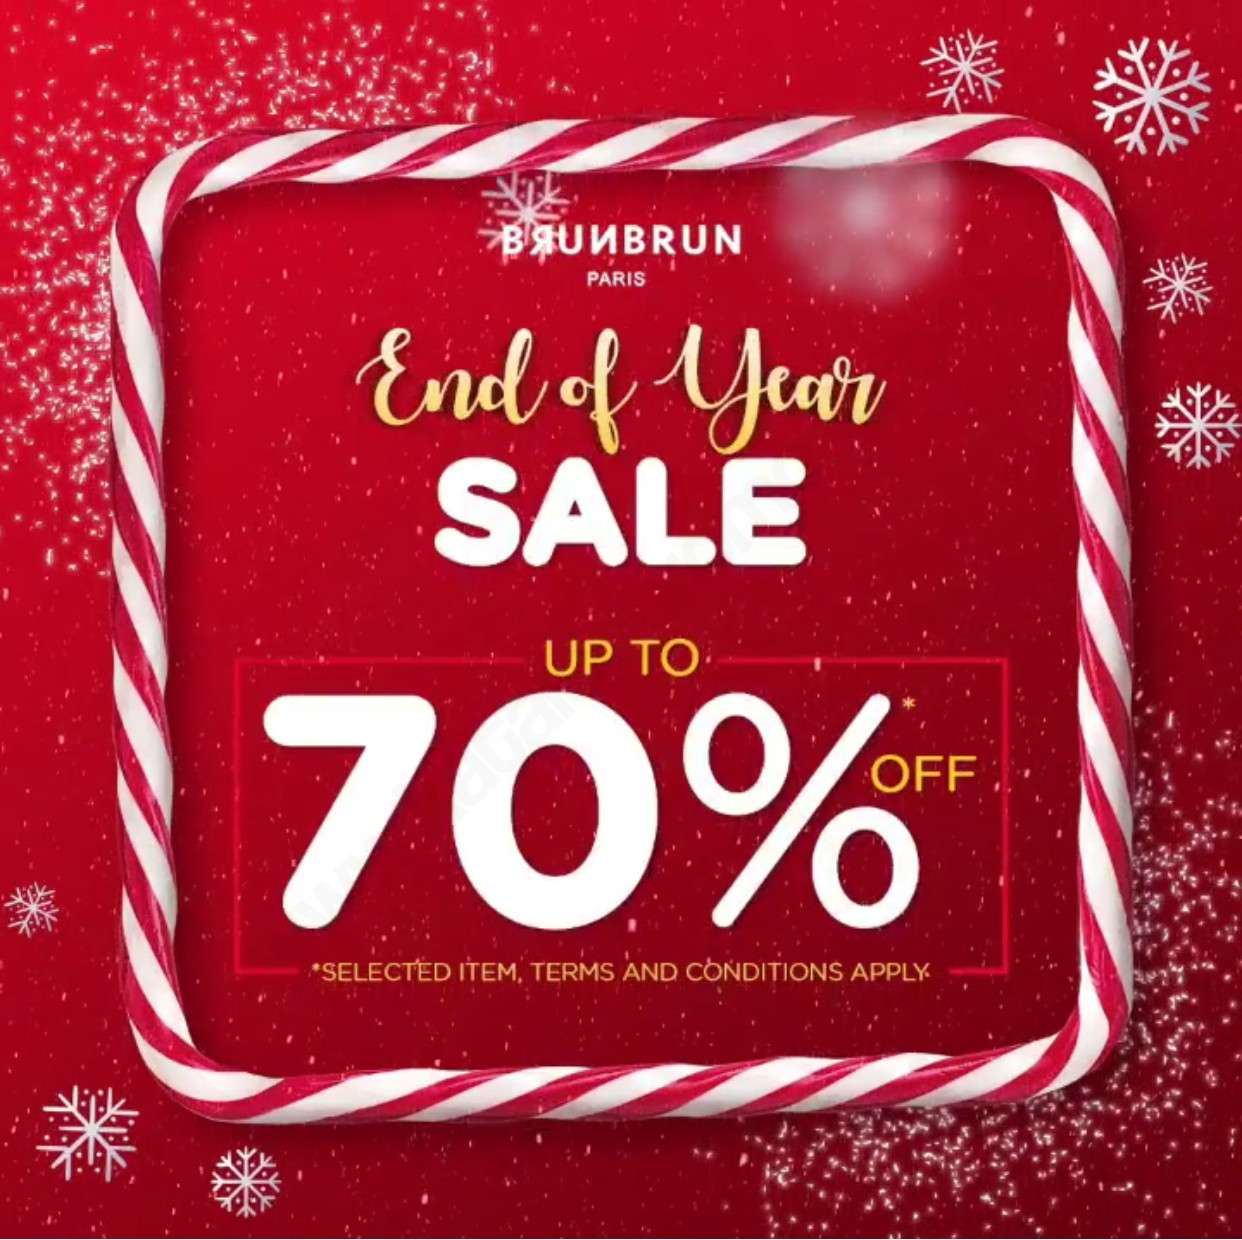 Brun Brun End of Year Sale up to 70% off